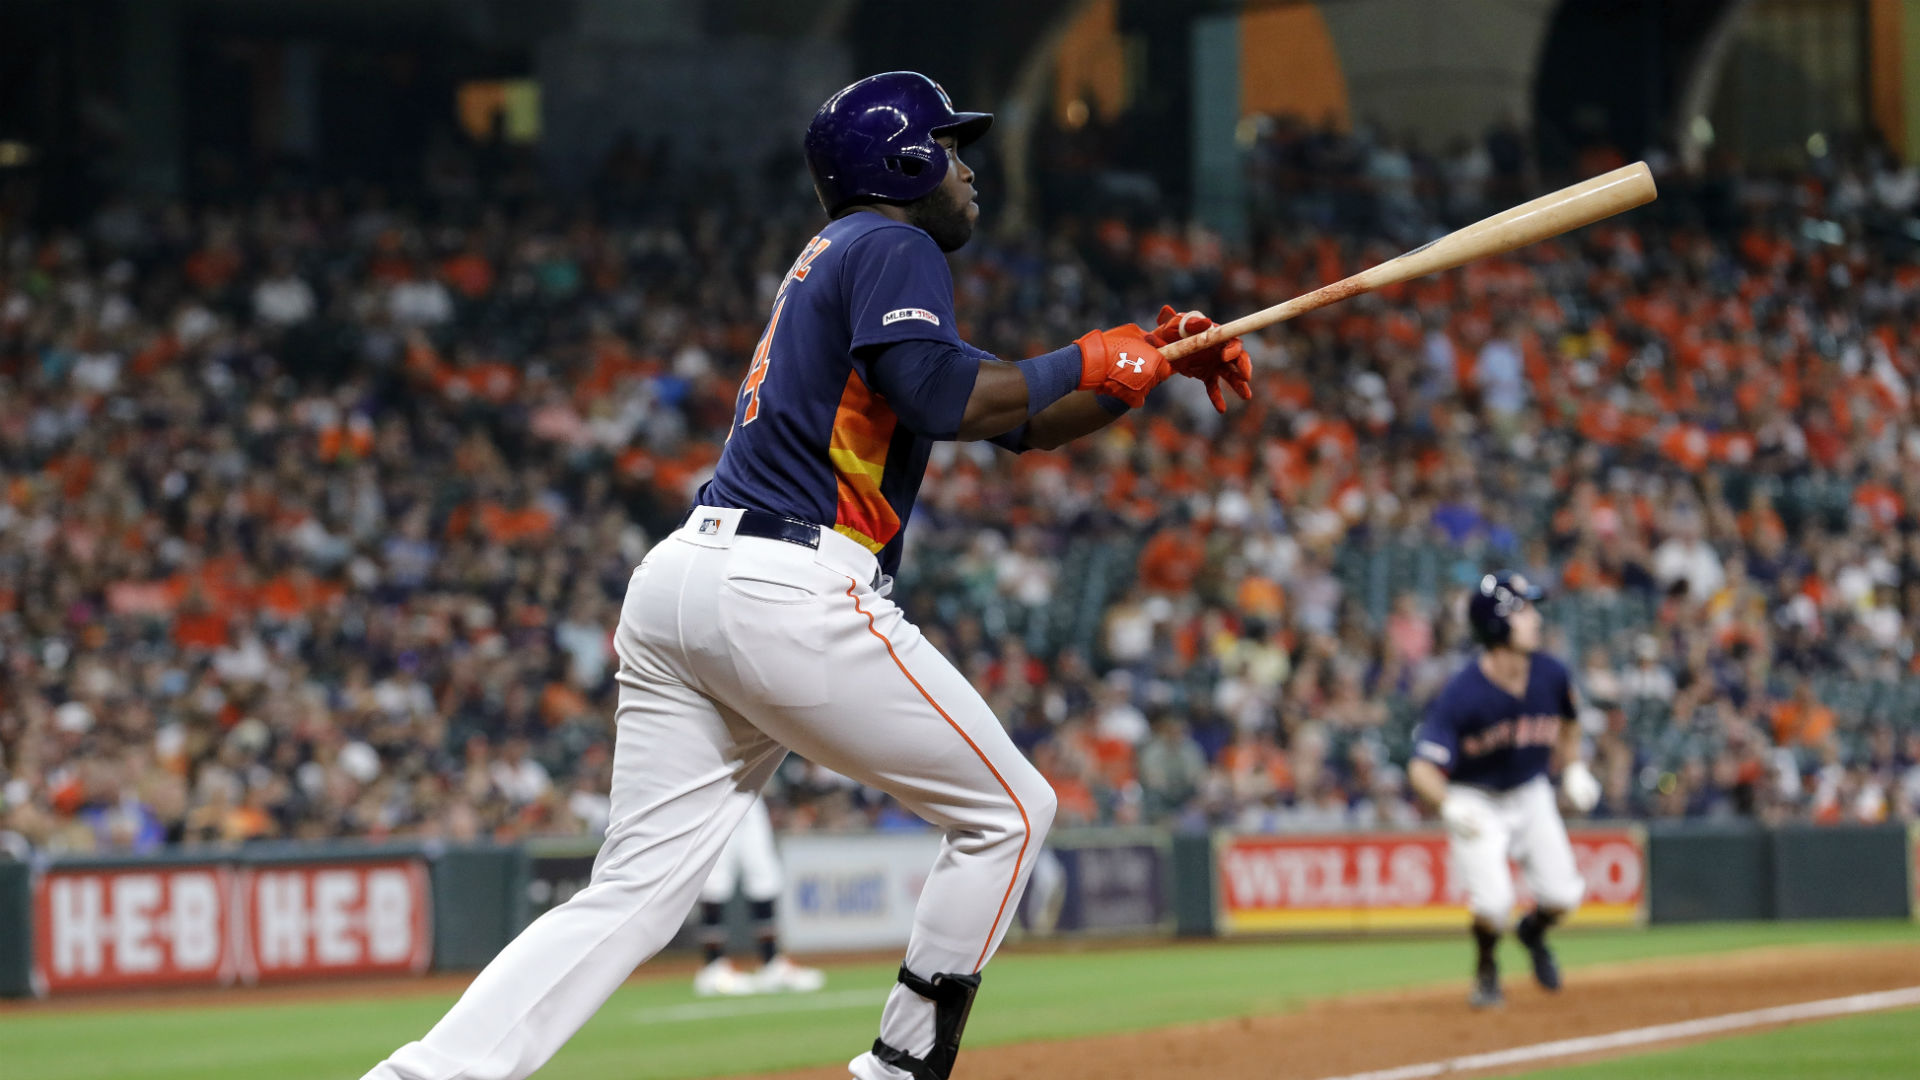 The Astros tallied 22 hits from 11 different batters against the Mariners, and Yordan Alvarez led the way offensively.